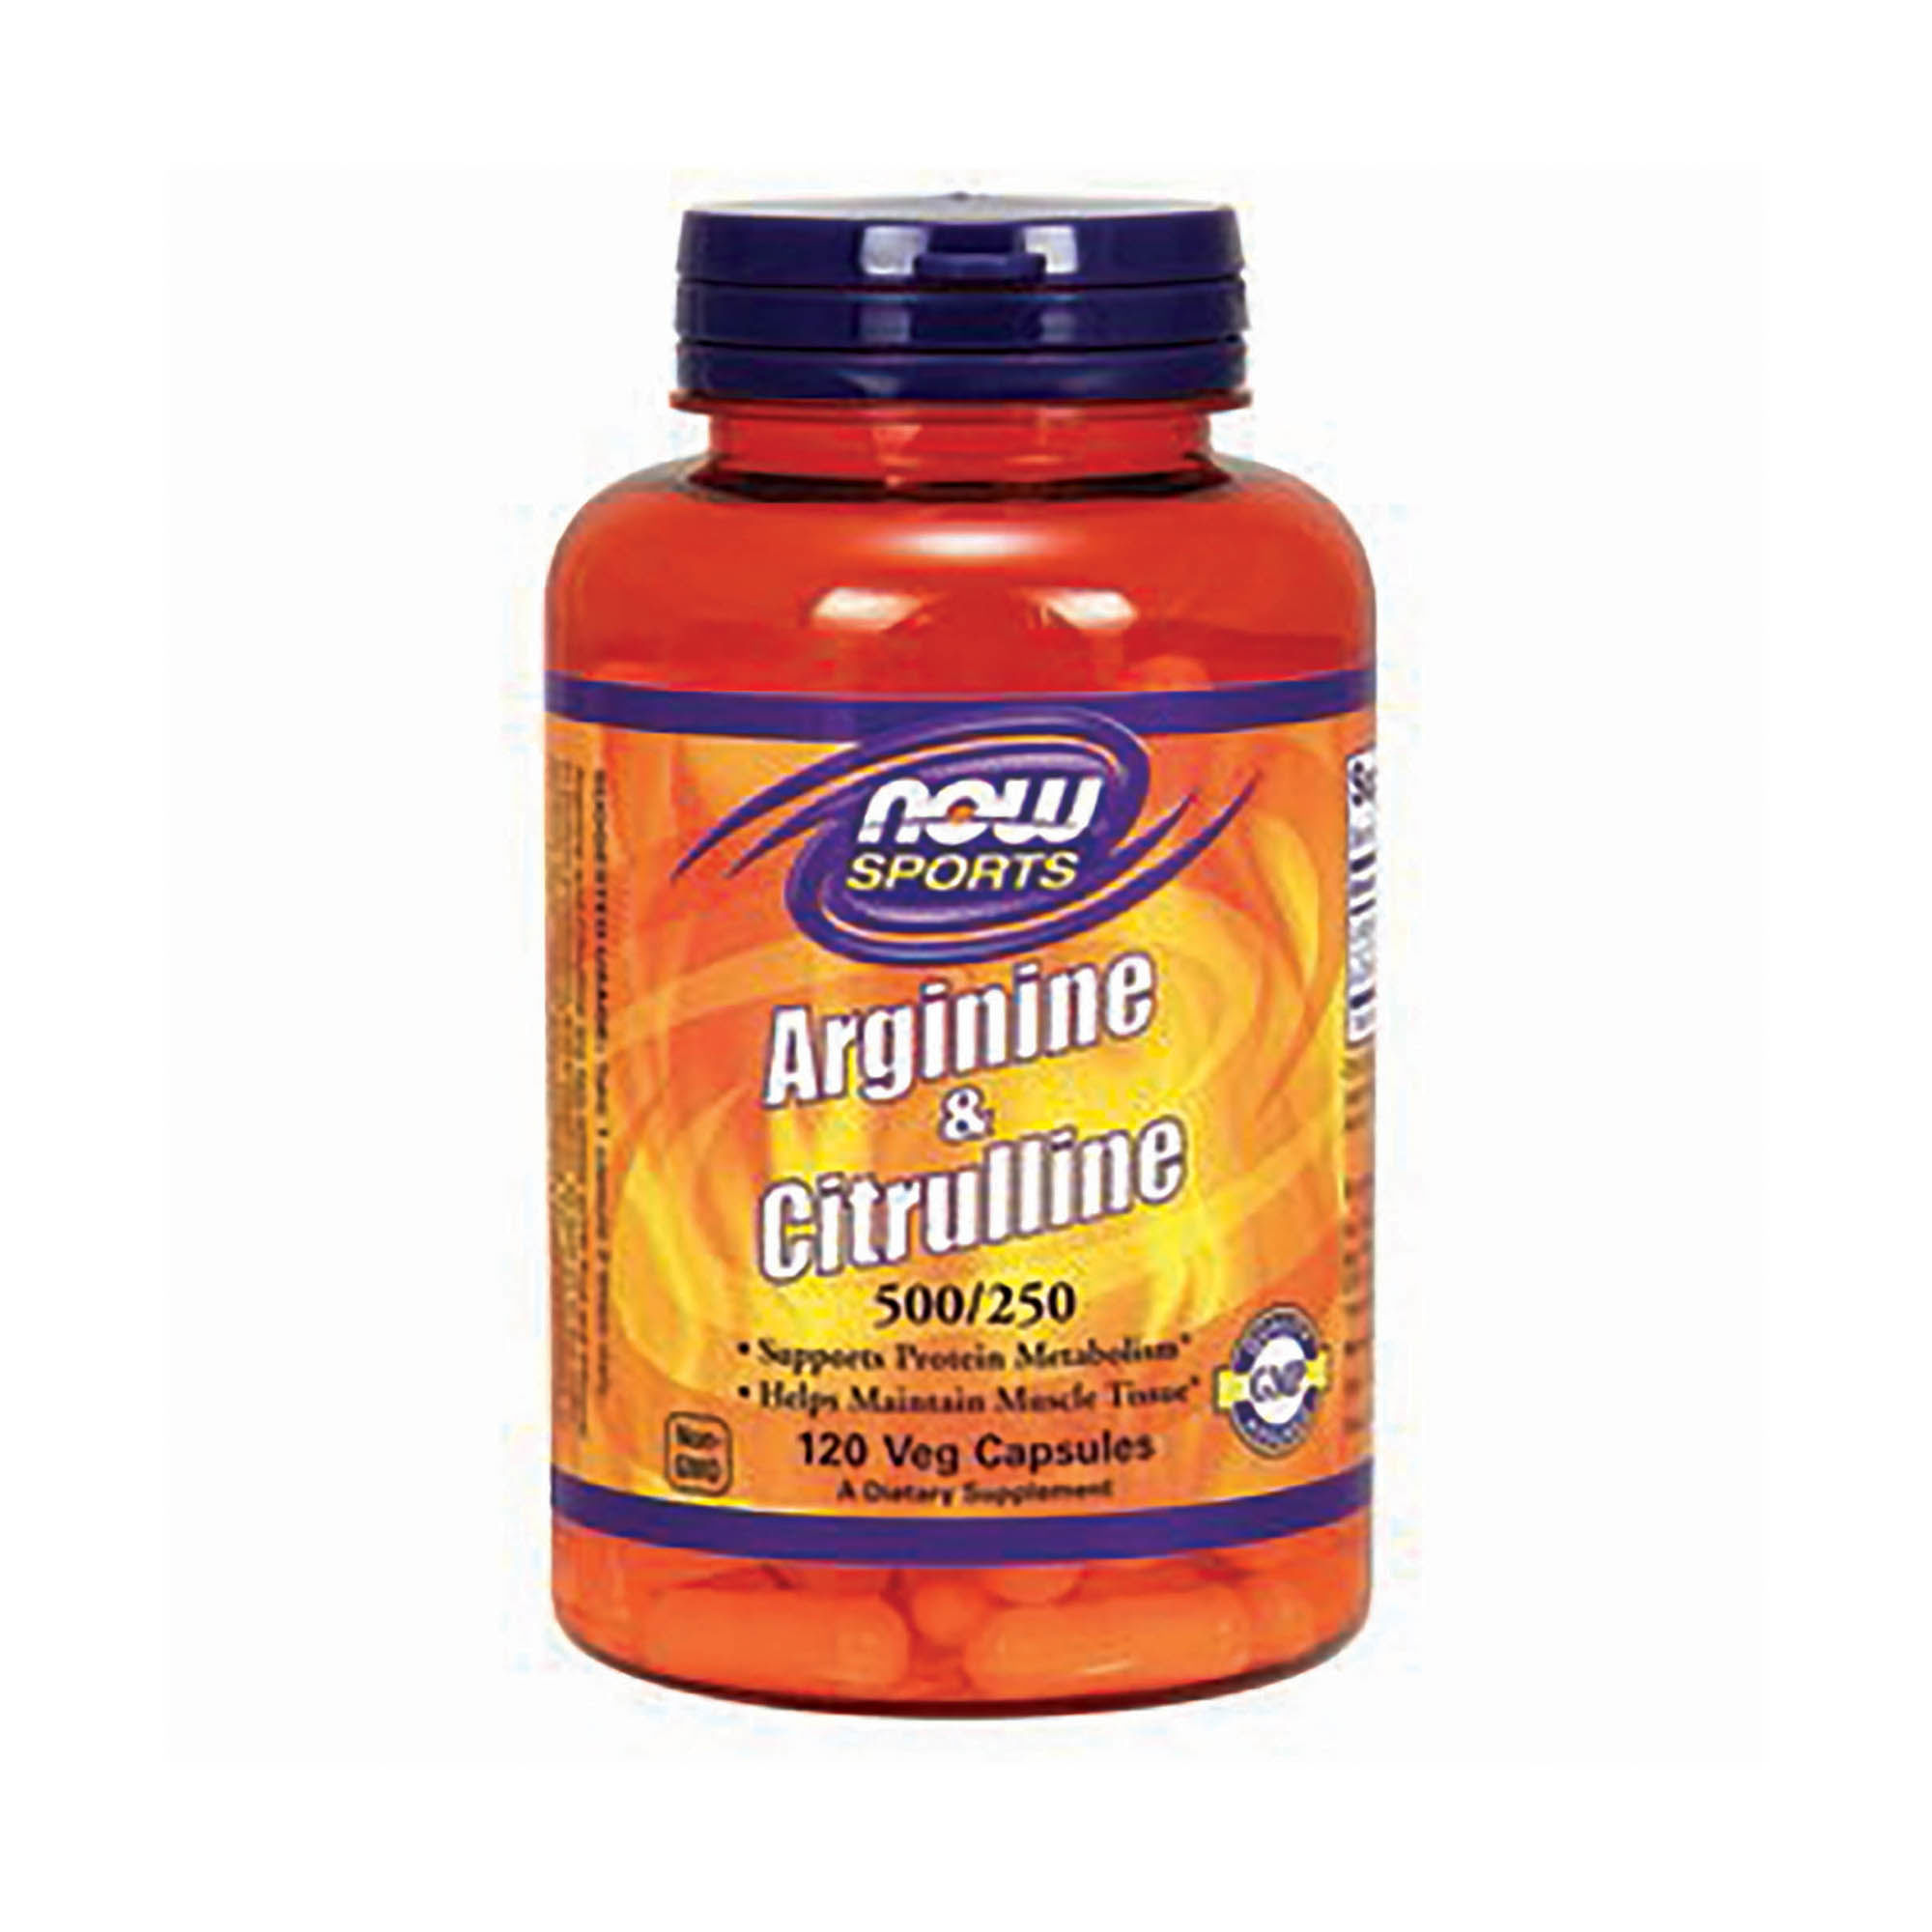 Now Sports Arginine and Citrulline